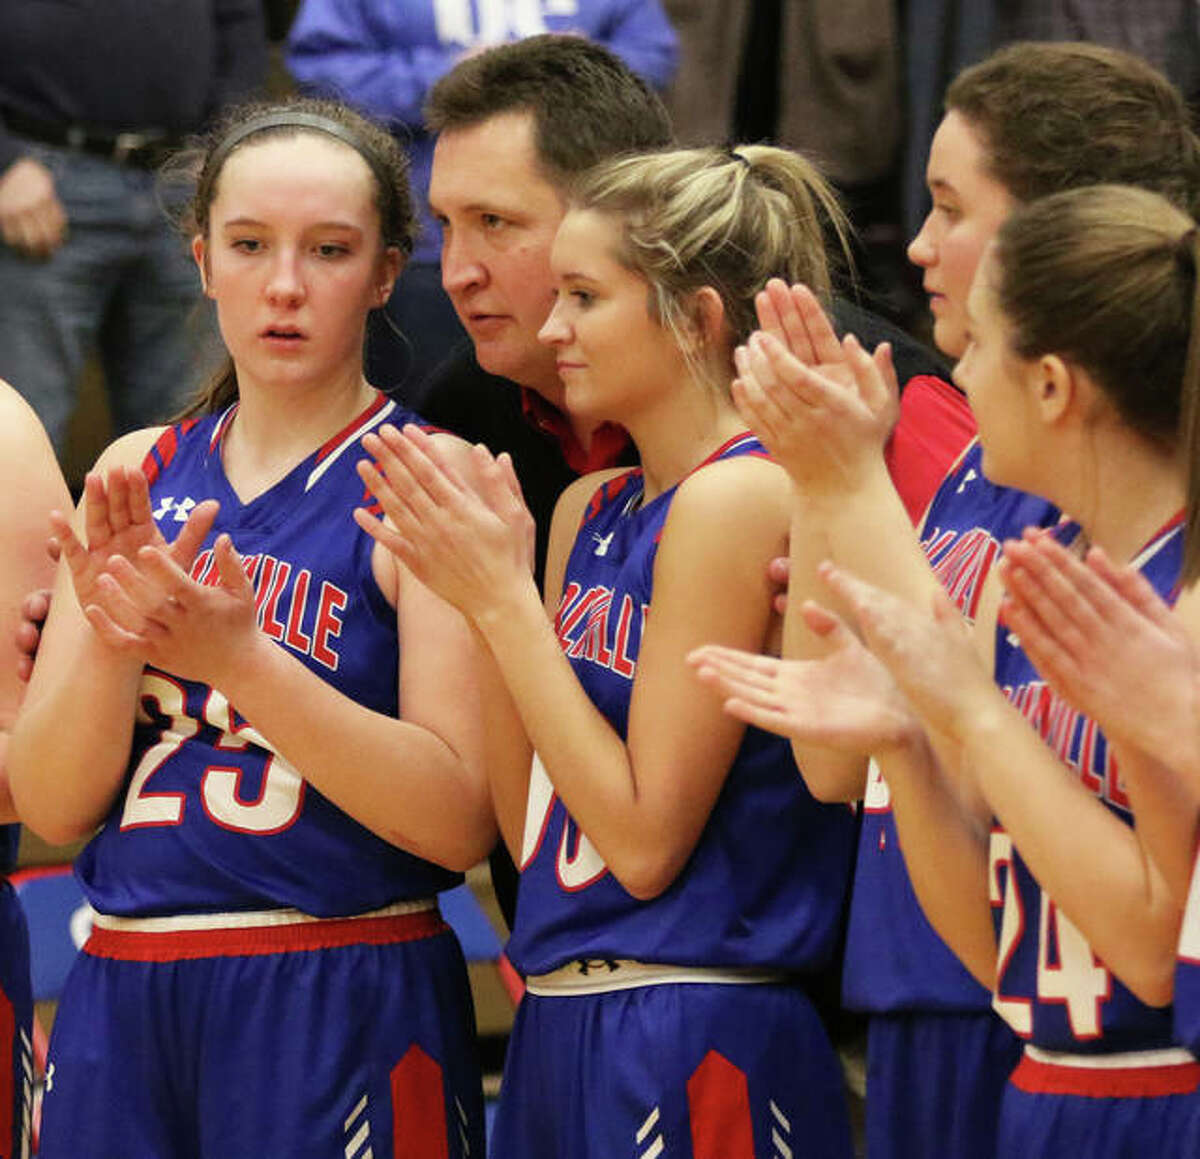 Carlinville girls basketball coach and athletic director Darrin DeNeve talks with his team during a 2018 game. Carlinville, along with fellow Region 3 schools Jersey High and schools in Macoupin, Calhoun, Greene and Bond counties among others, are now in Phase 4 status, which allows for practices and competition to begin.